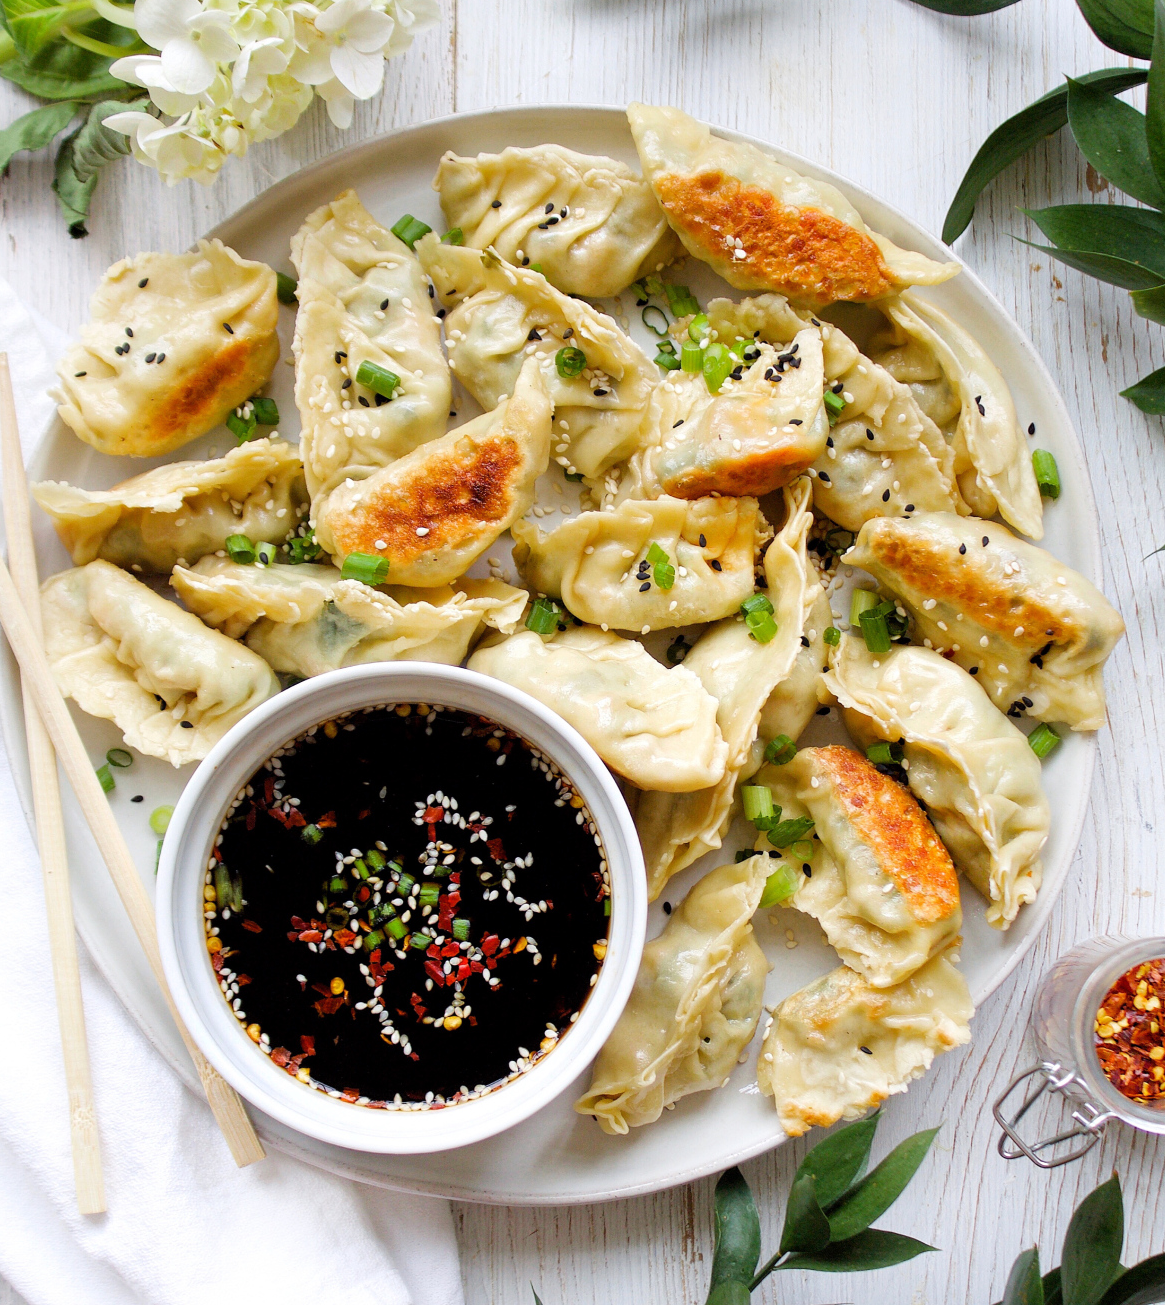 Vegetable Dumplings with Maple Soy Dipping Sauce